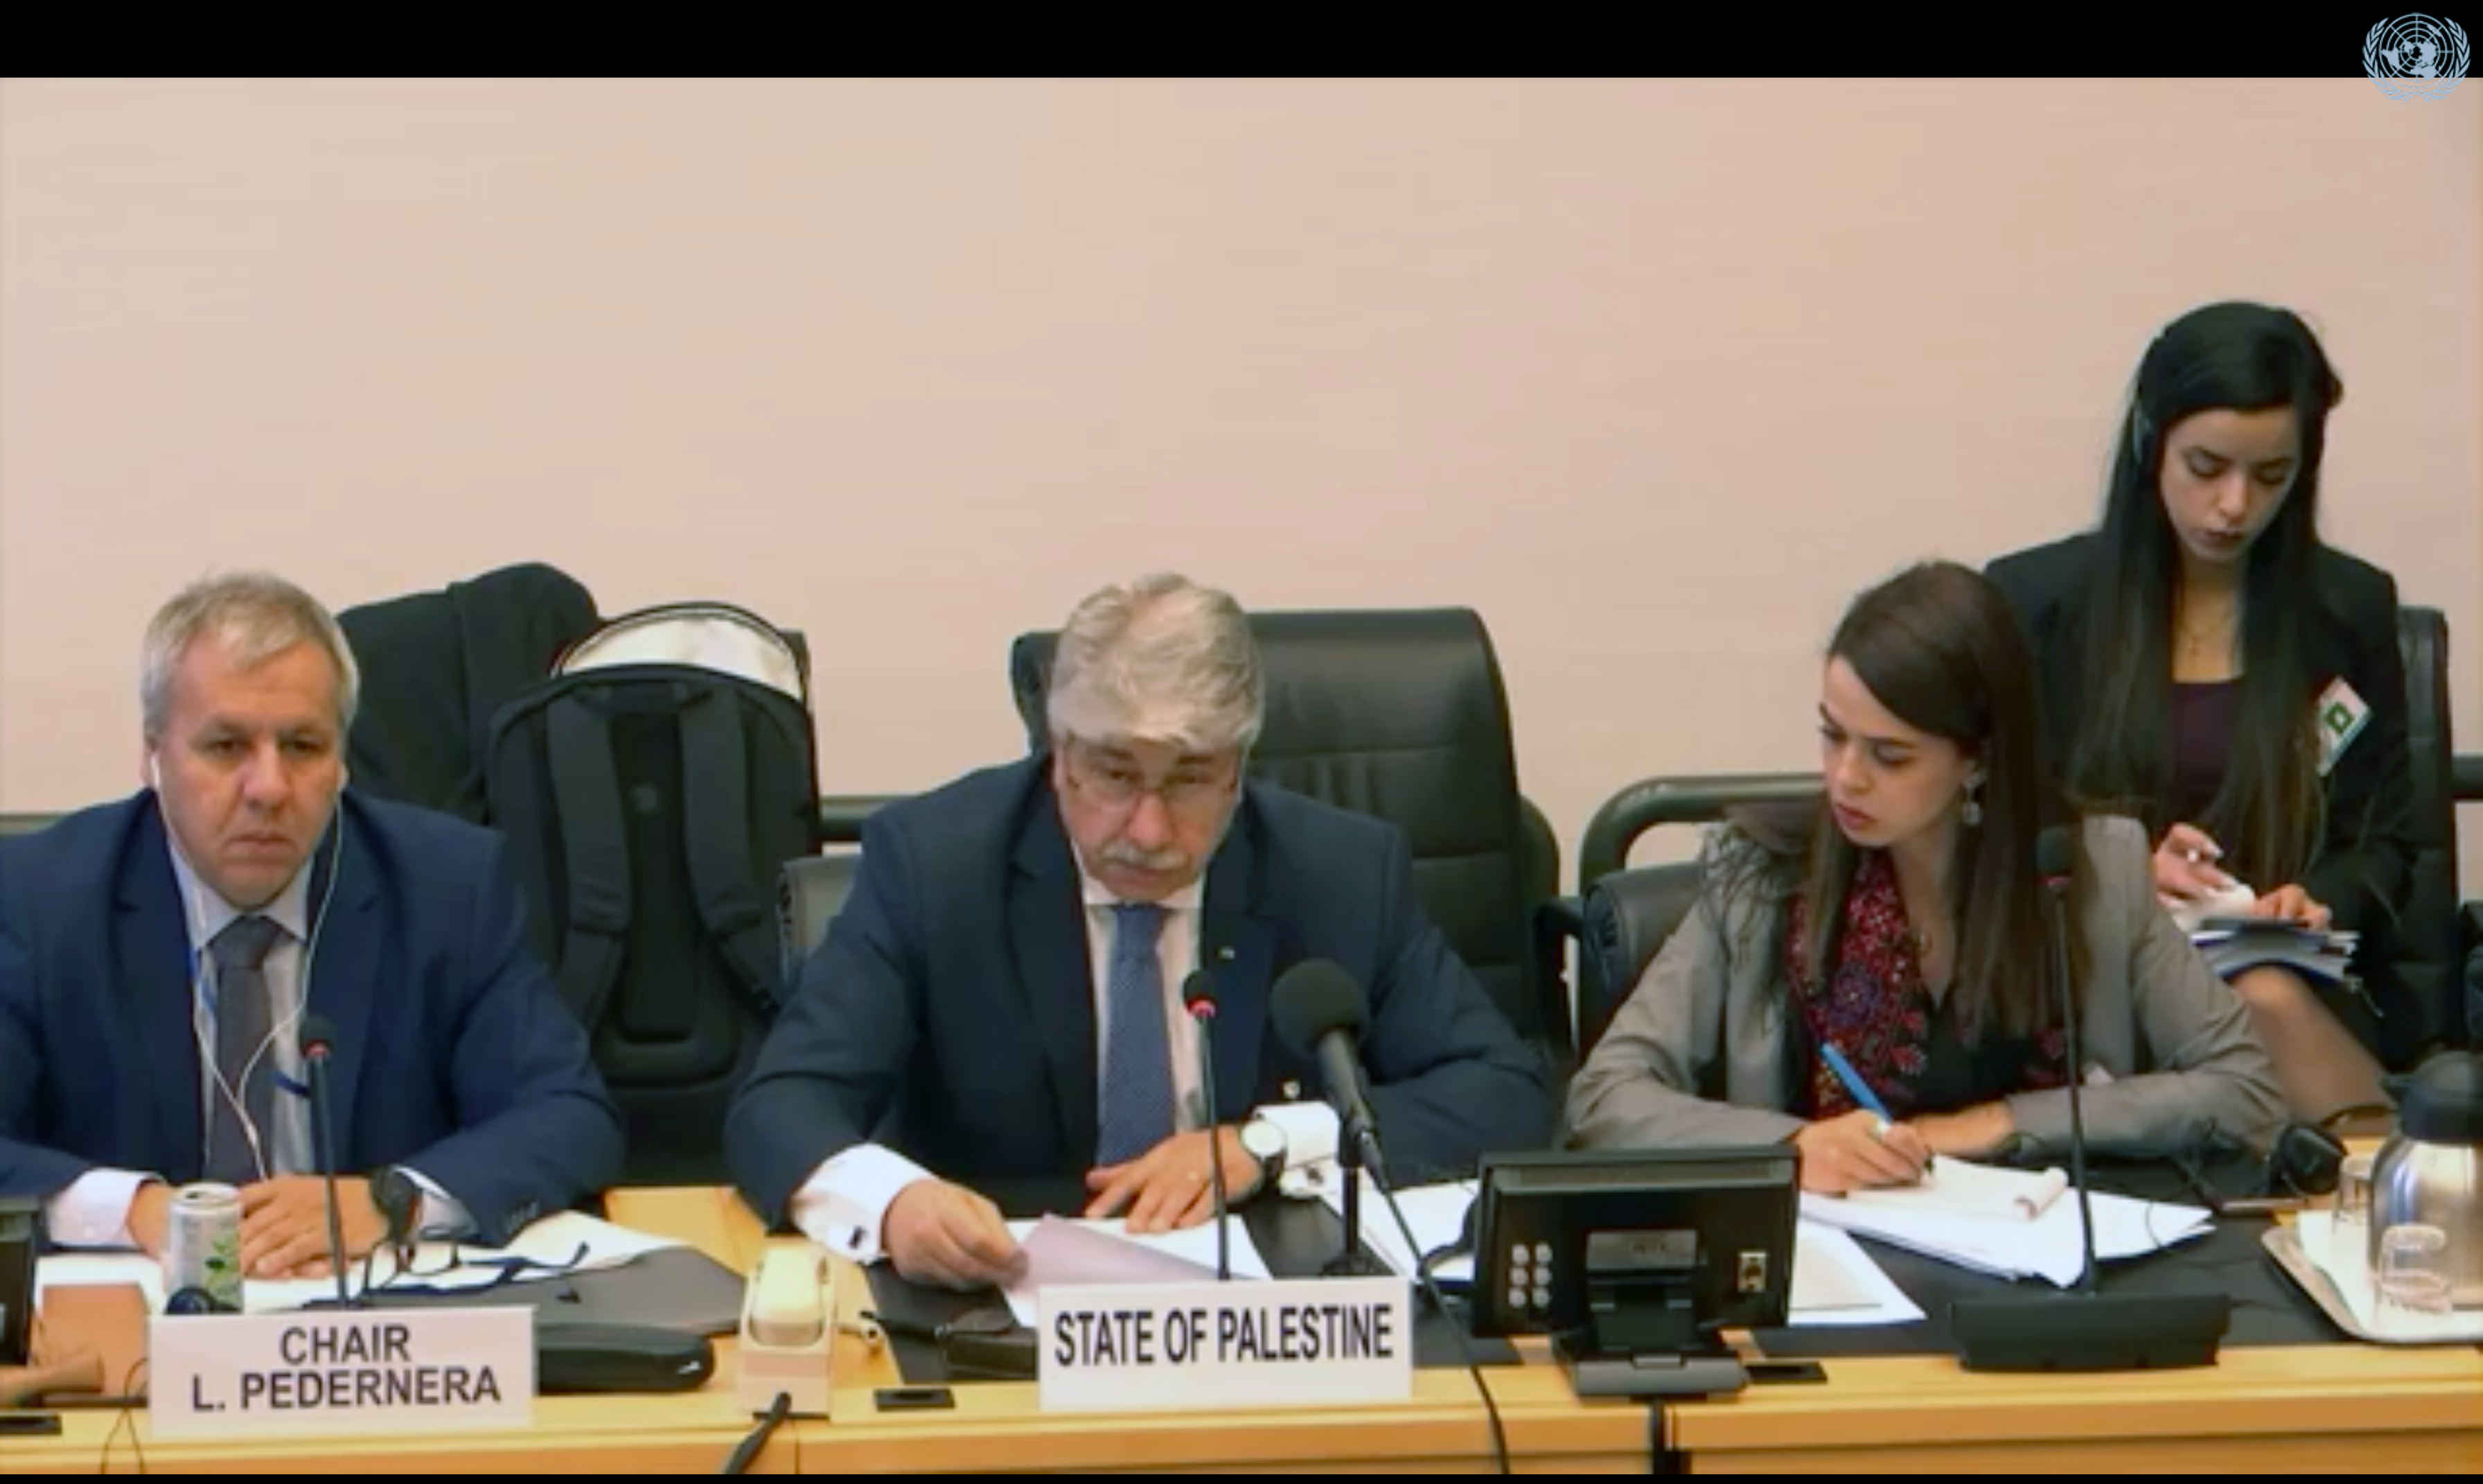 Palestinian Minister of Social Development Ahmed Majdalani participates in initial review of the State of Palestine during the 83rd session of the Committee on the Rights of the Child in Geneva, Switzerland on January 2020. (Screenshot from UN WebTV livestream)